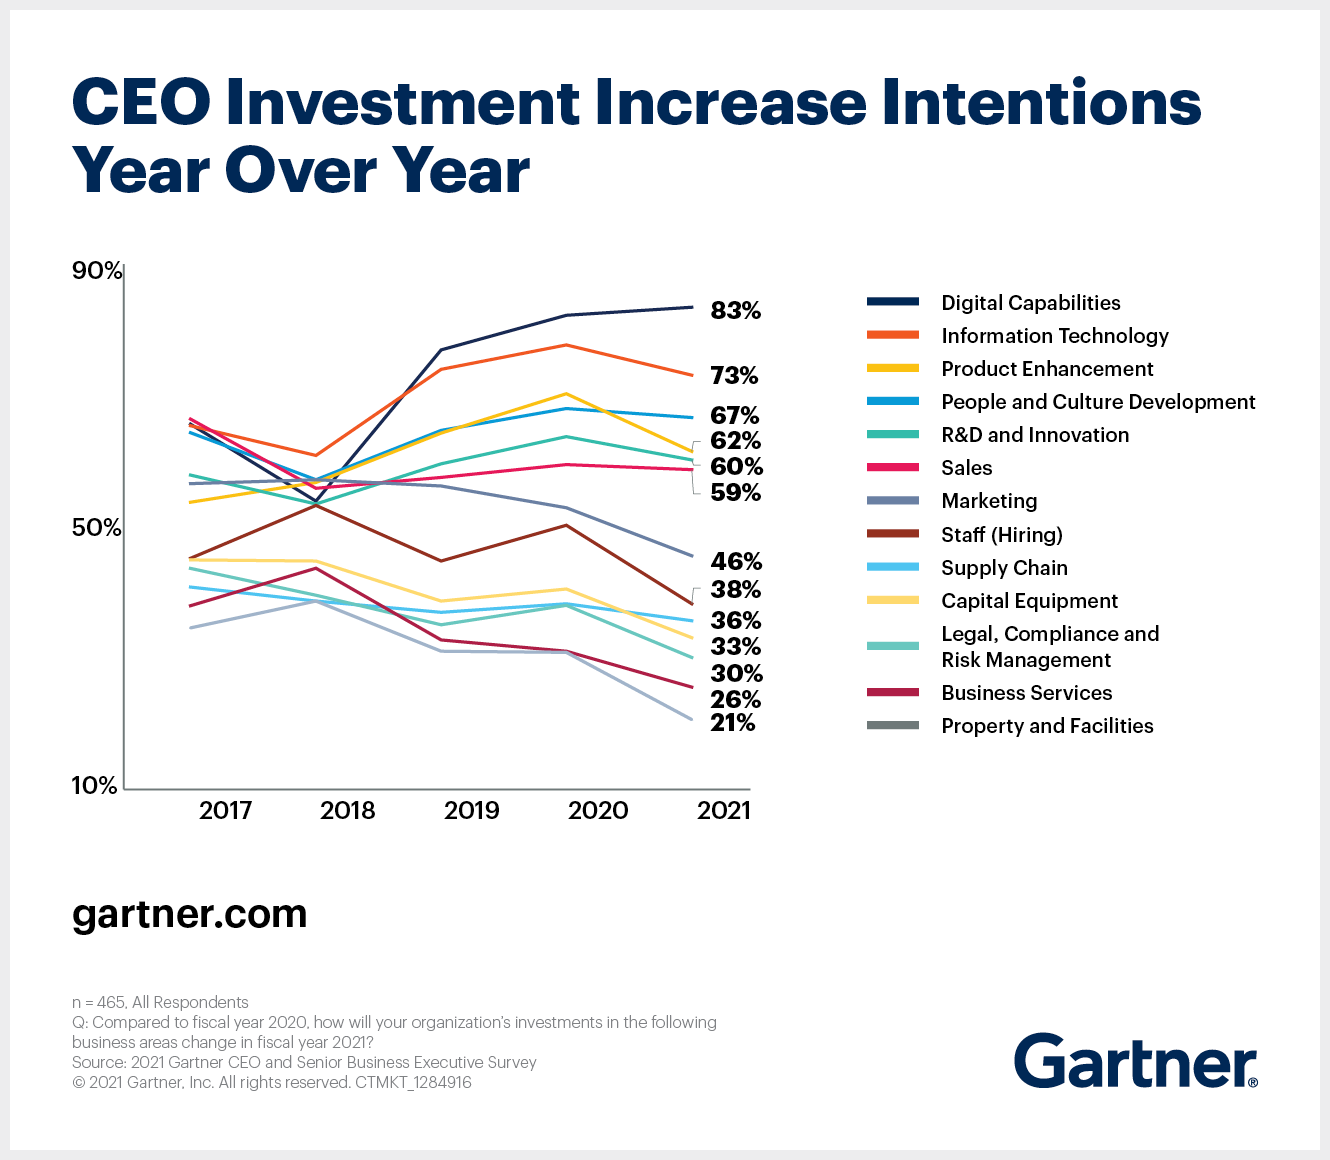 Gartner 2021 CEO Survey shows that most CEOs expect increased investment in digital capabilities and information technology in fiscal 2021